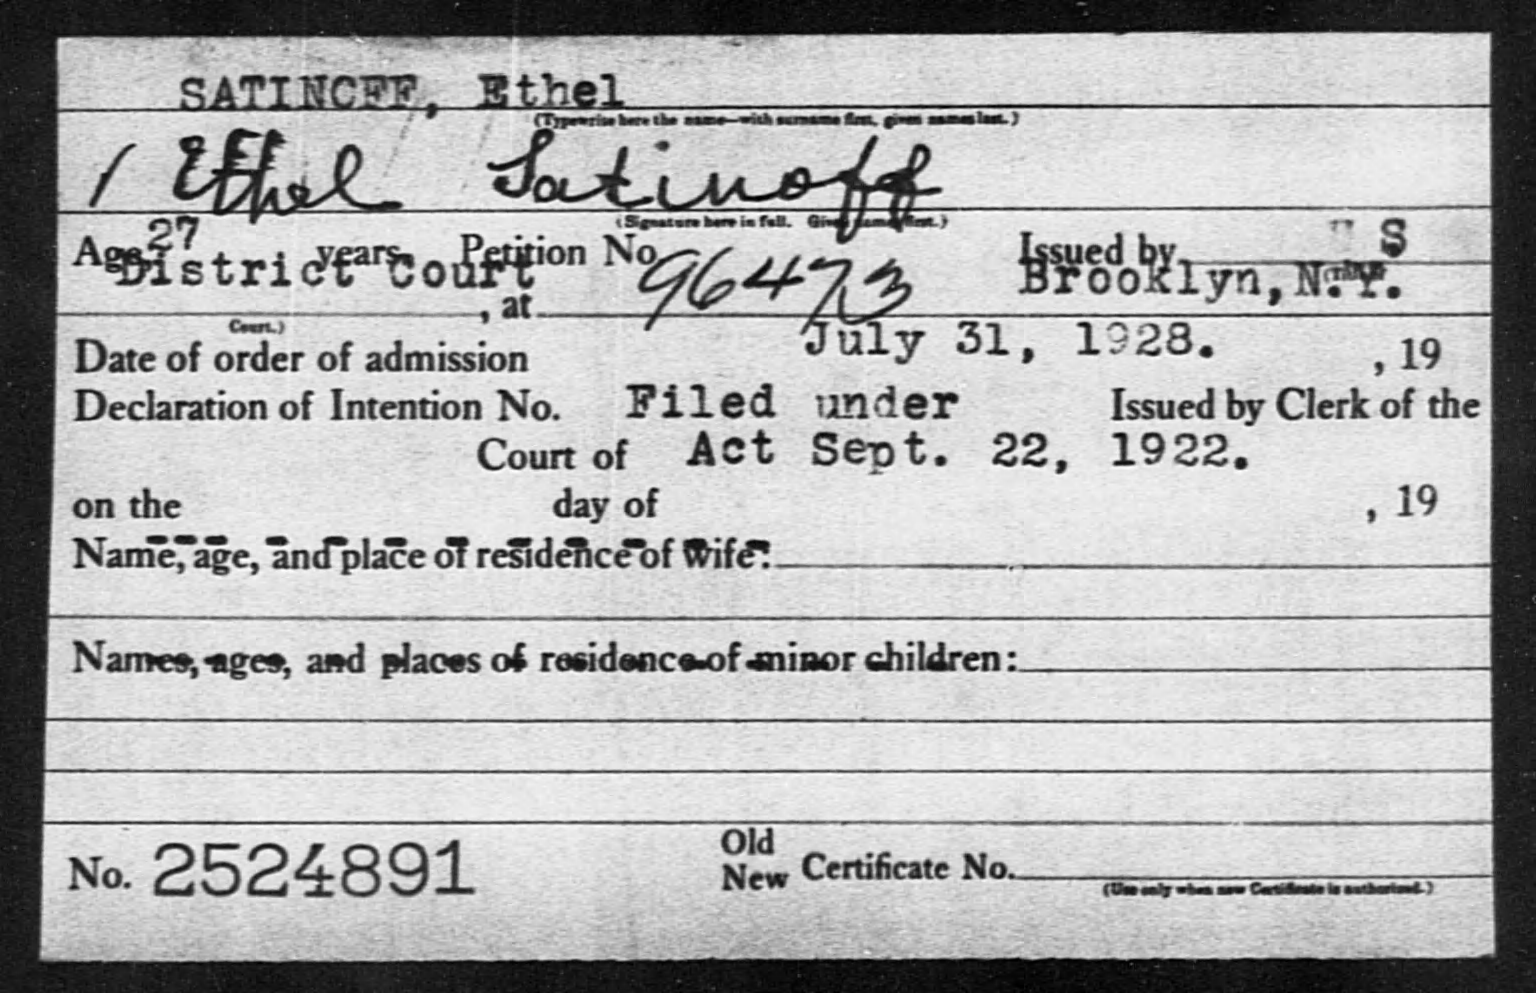 SATINOFF, Ethel - Born: [BLANK], Naturalized: 1928